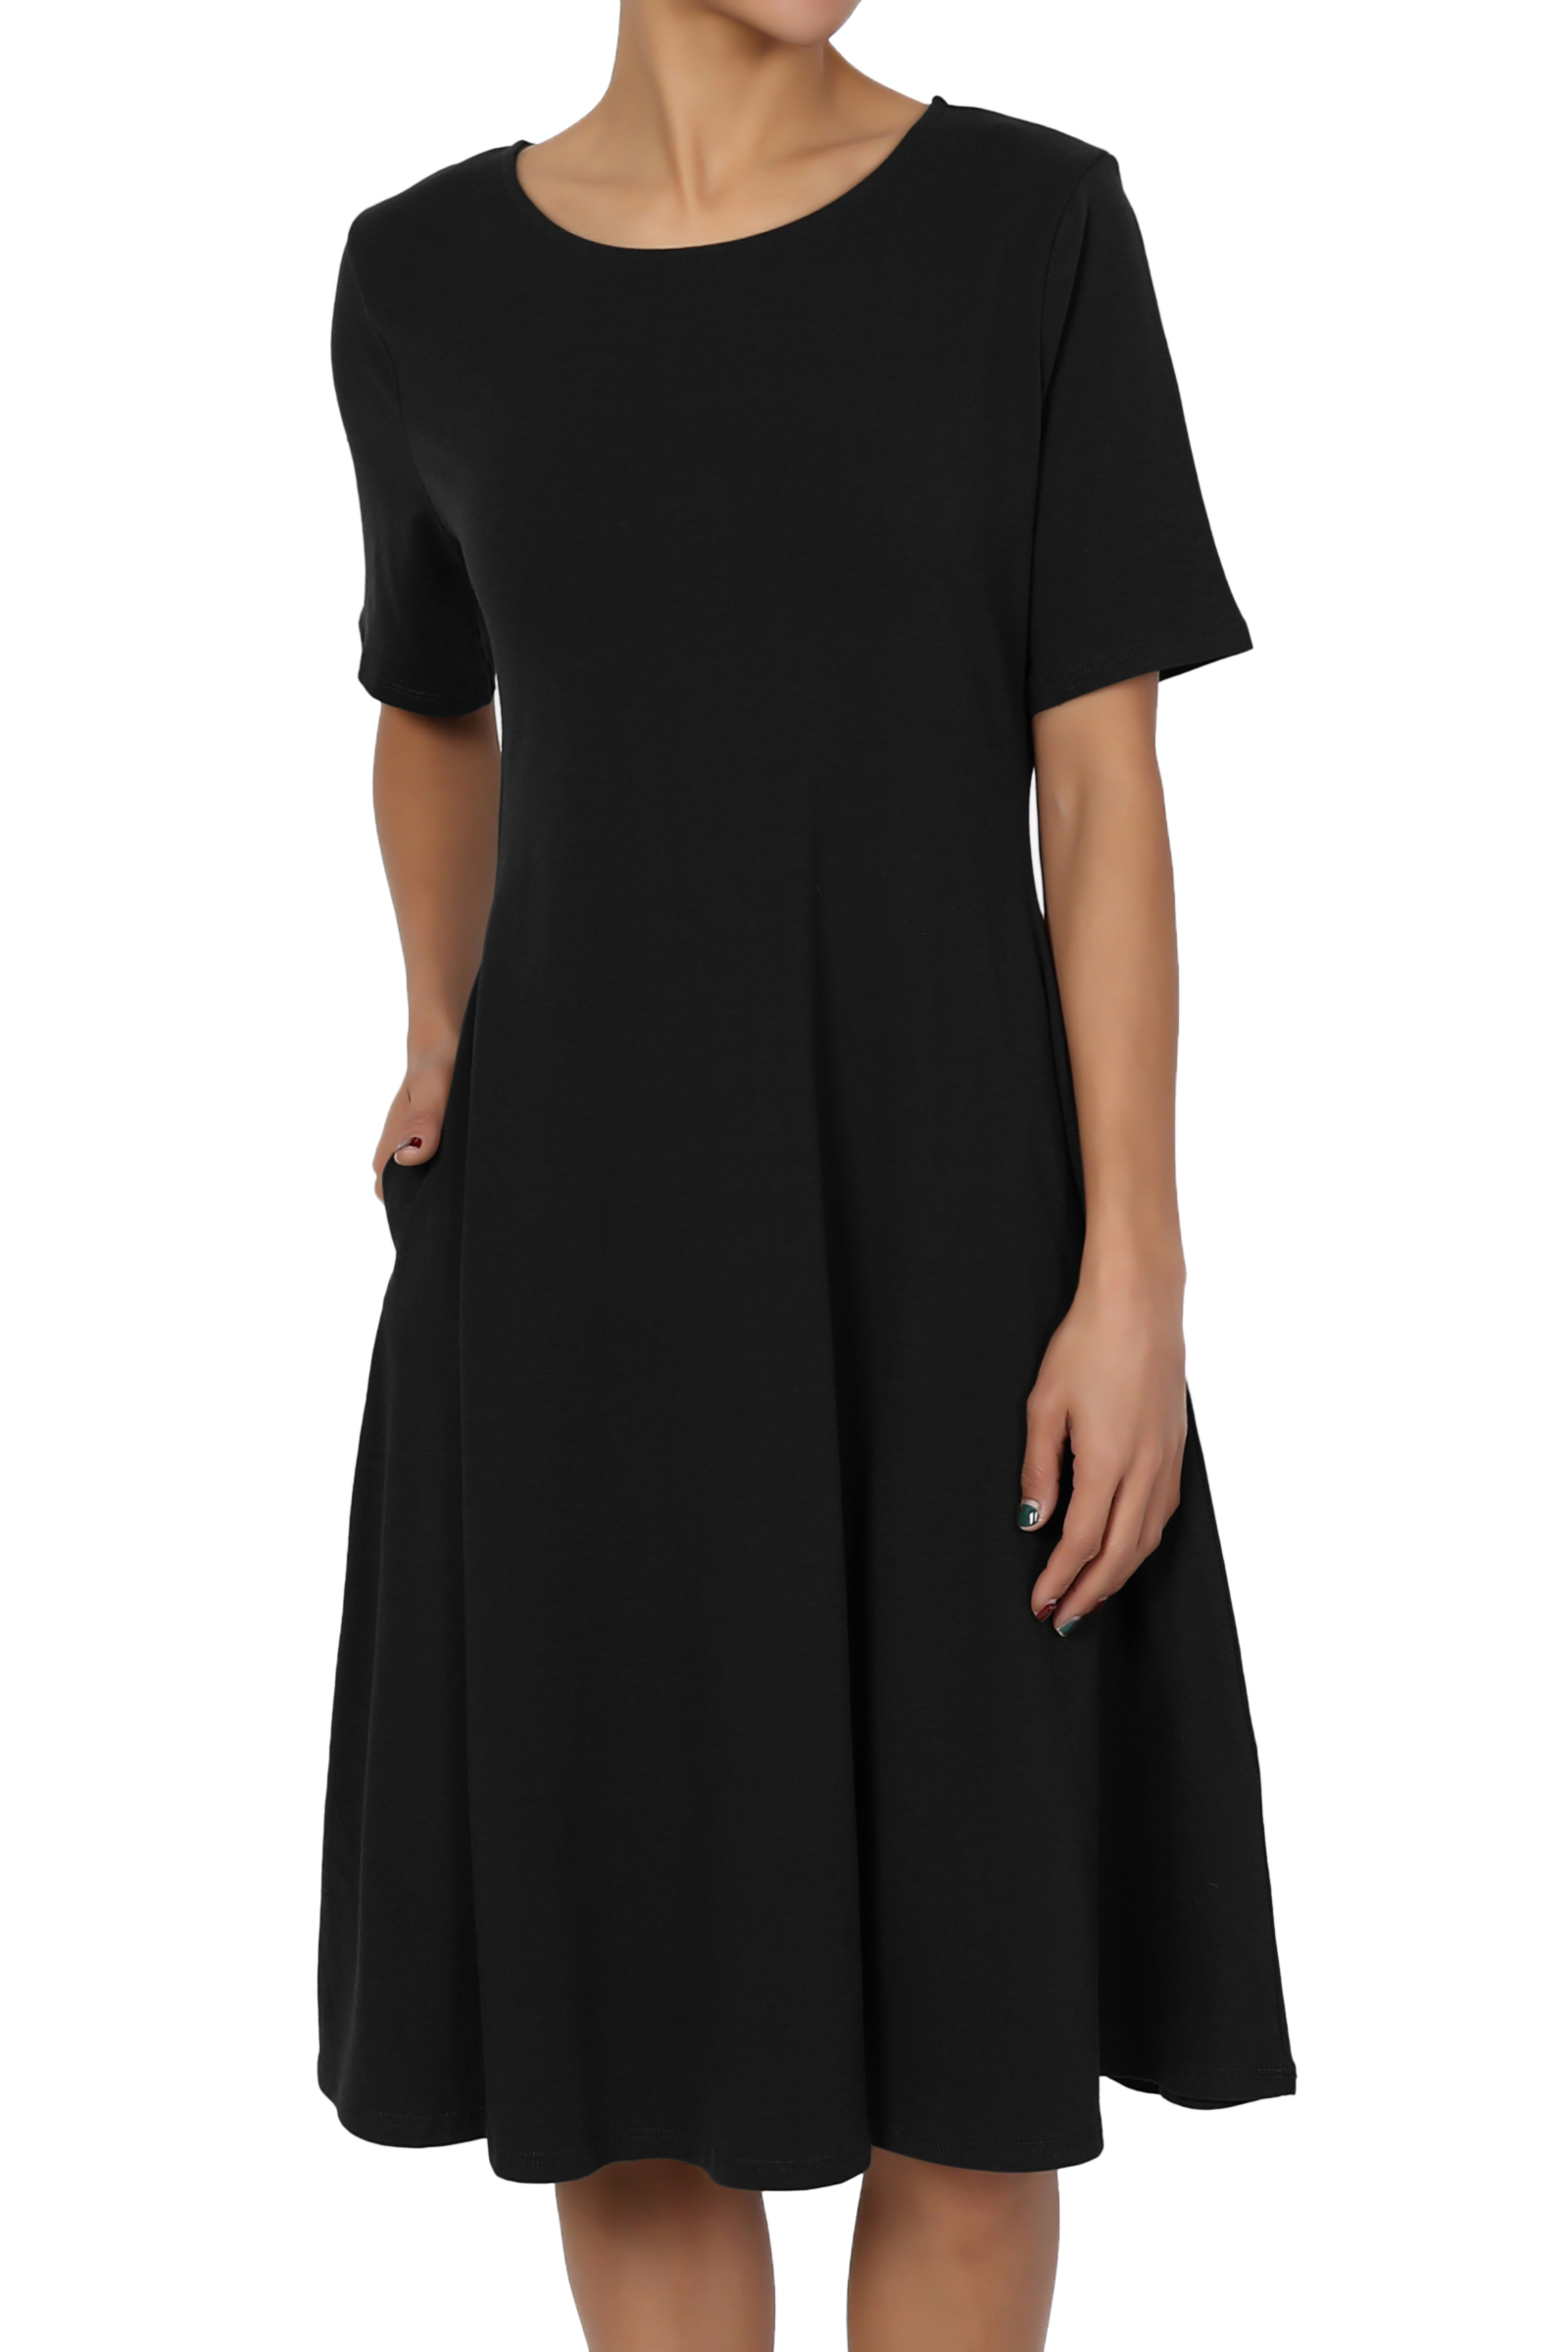 TheMogan Women's S~3X Short Sleeve Stretch Cotton Jersey Fit and Flare Dress W Pocket